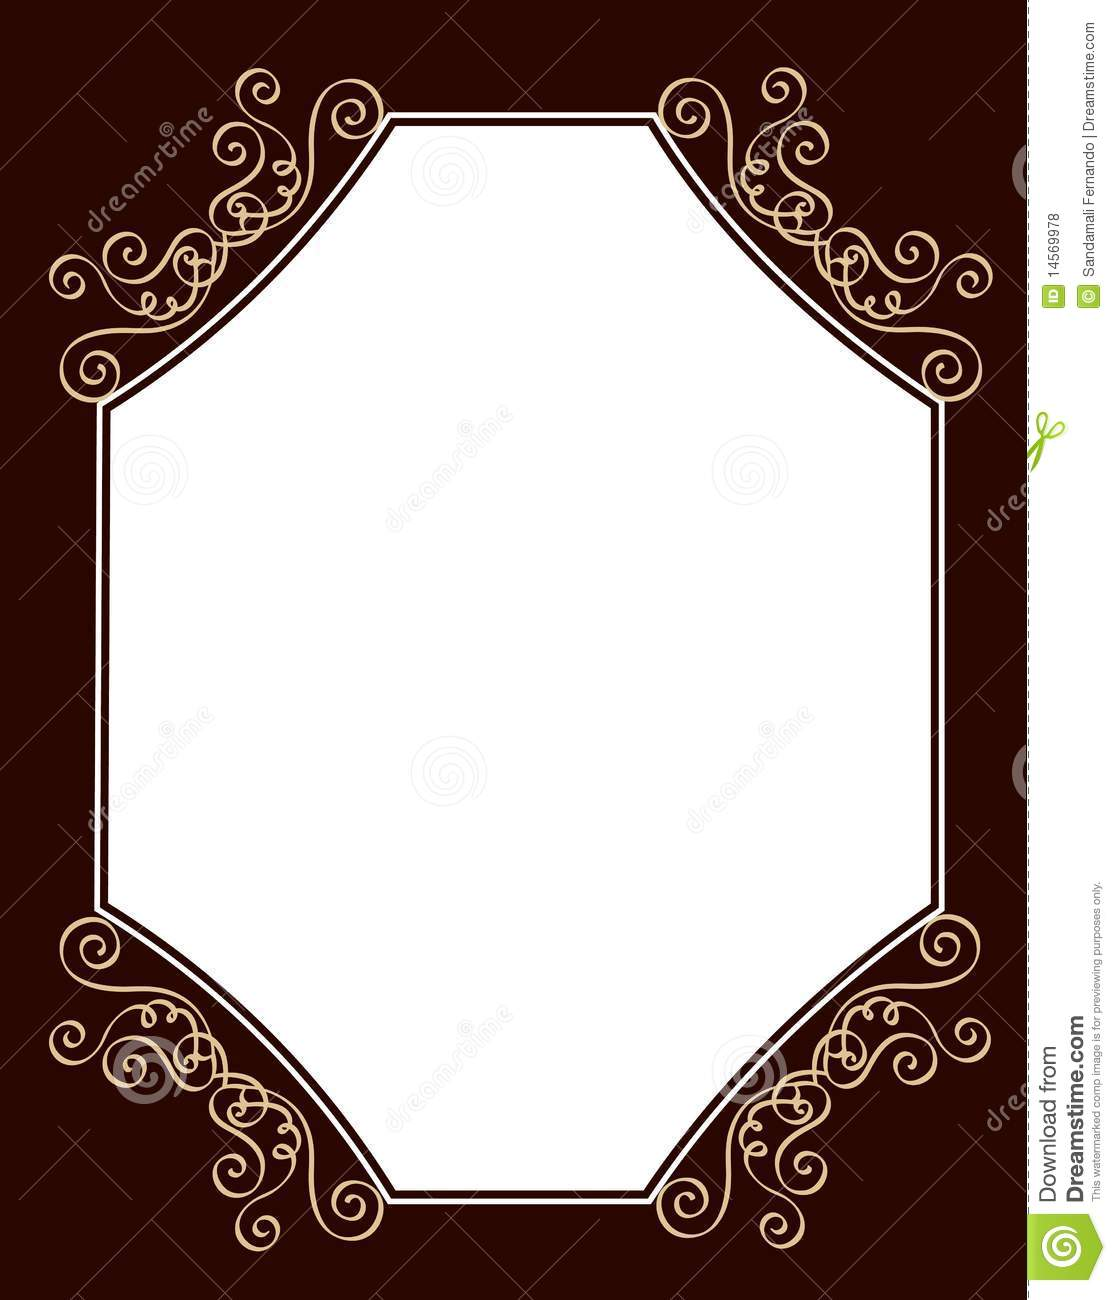 Wedding Invitation Template Stock Vector Illustration Of